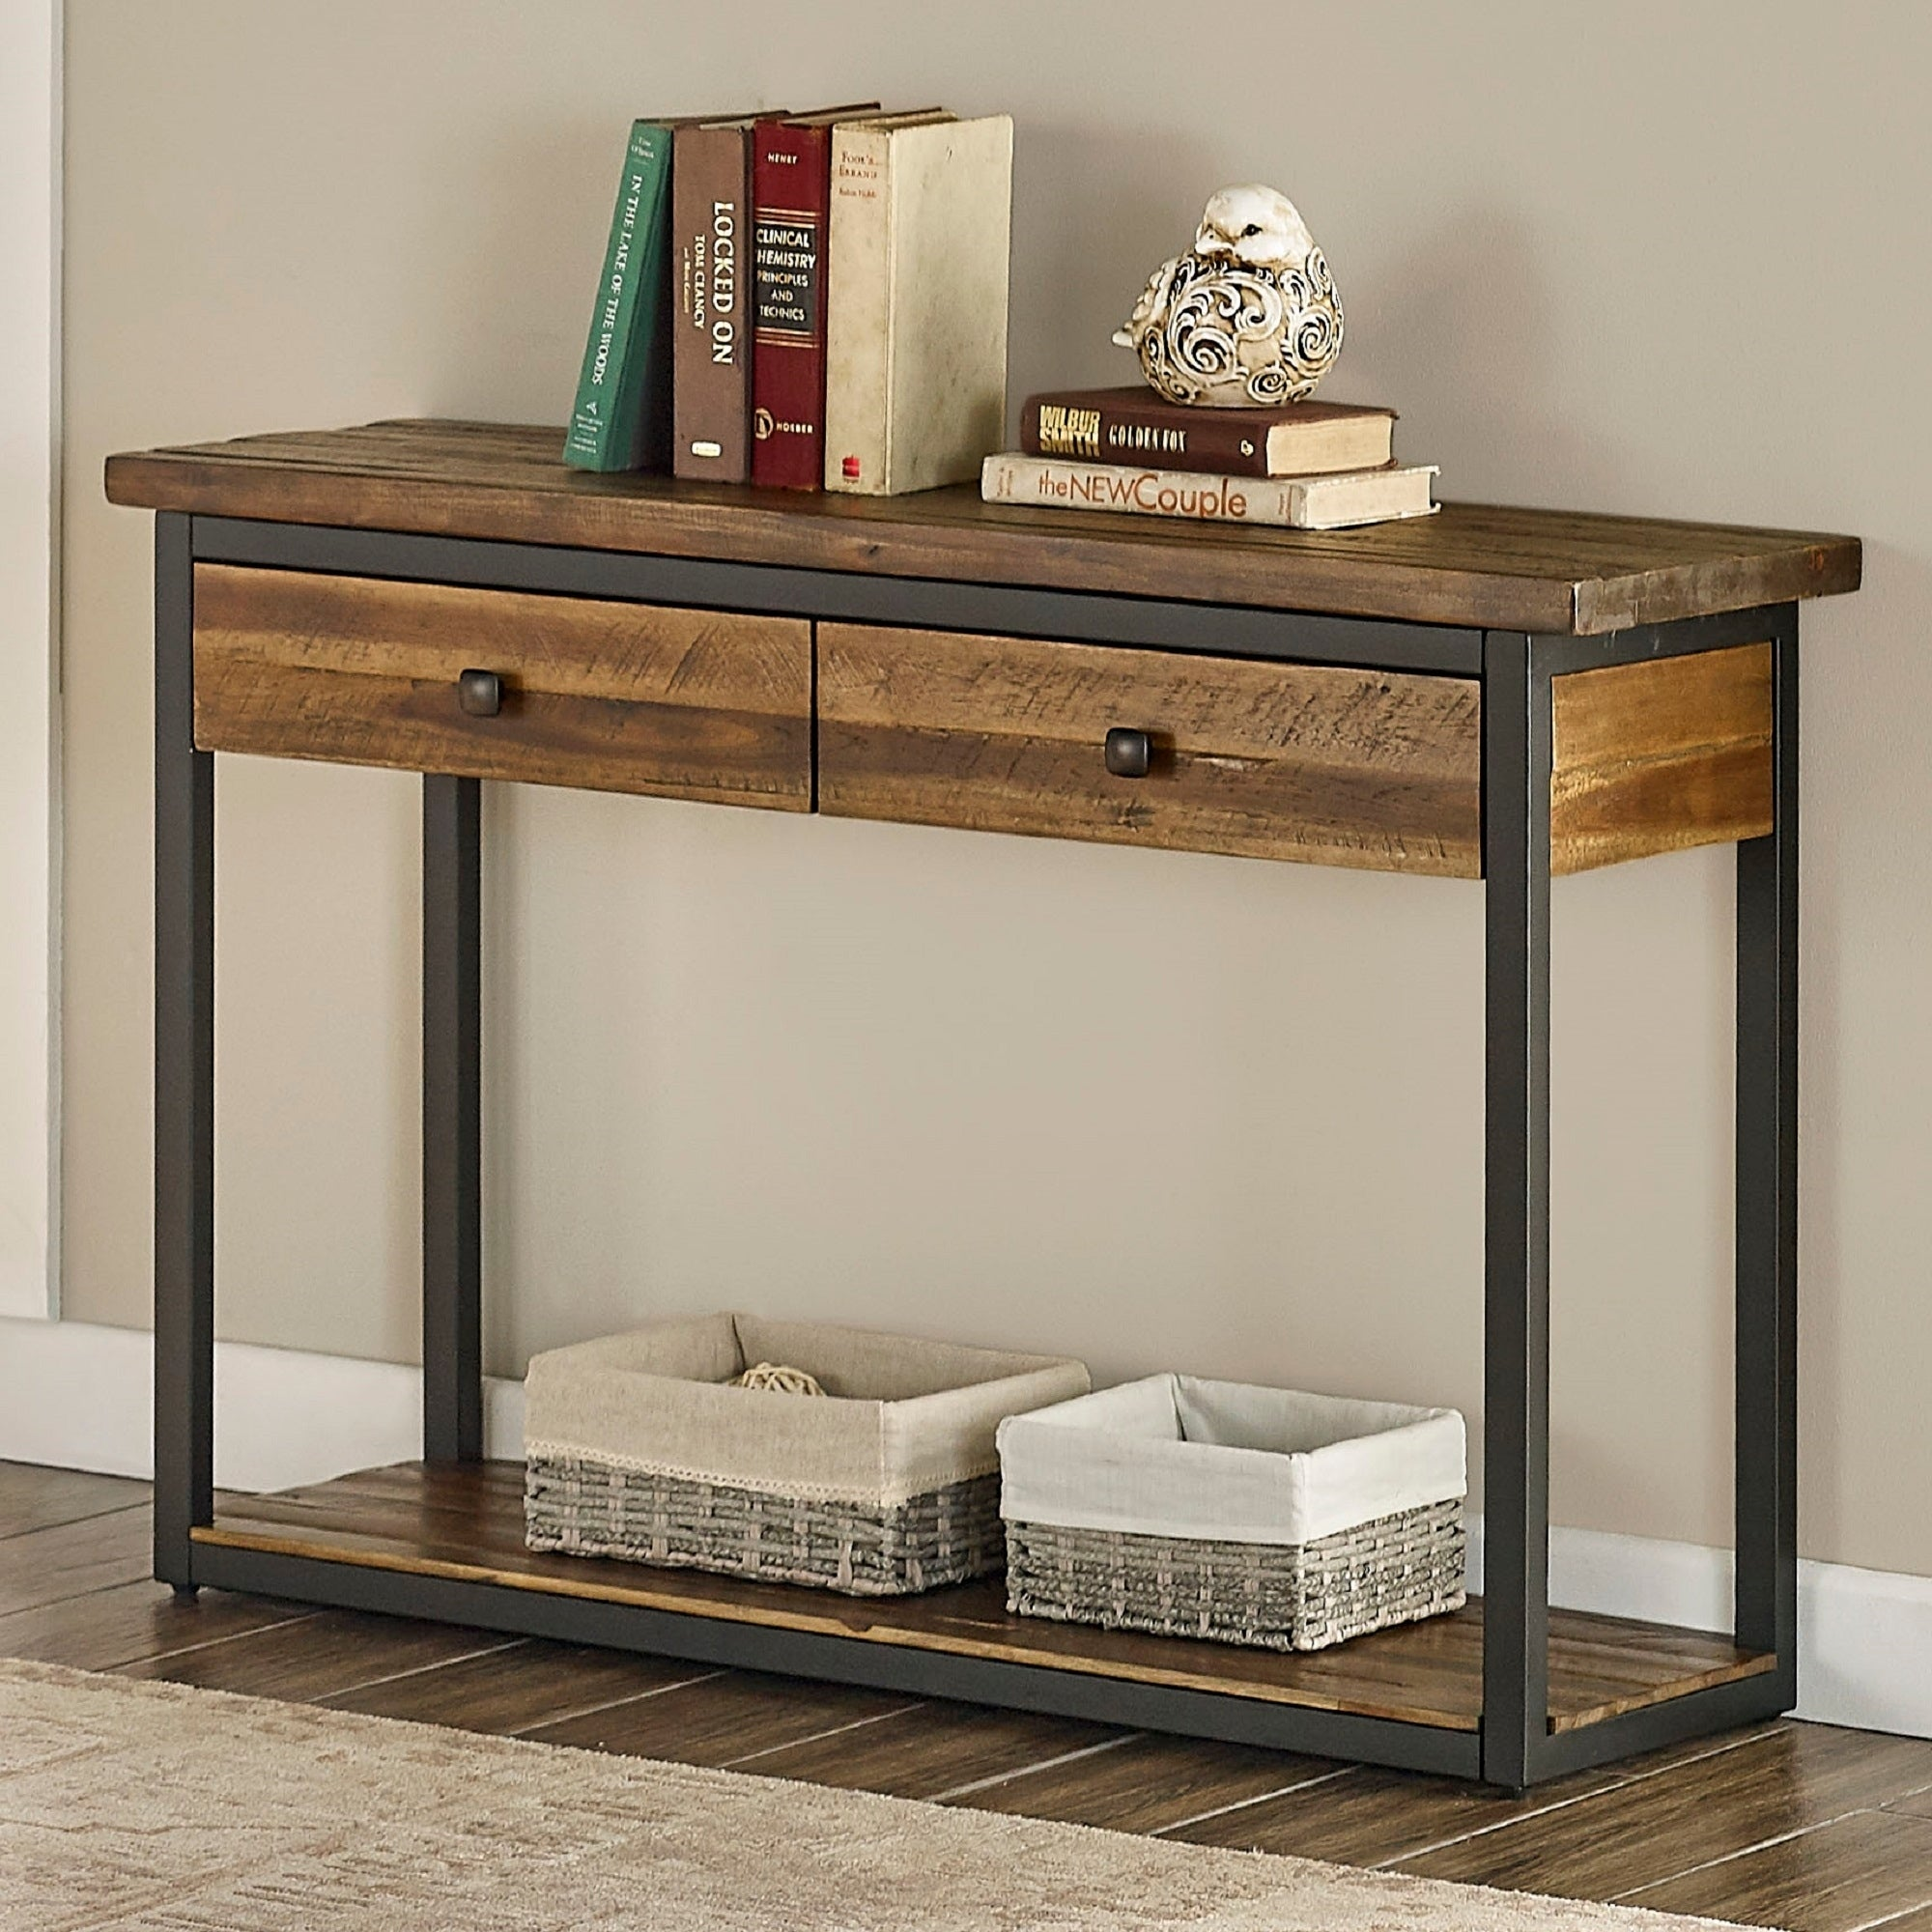 Claremont 43 L Rustic Wood Console Table With Two Drawers And Low Shelf